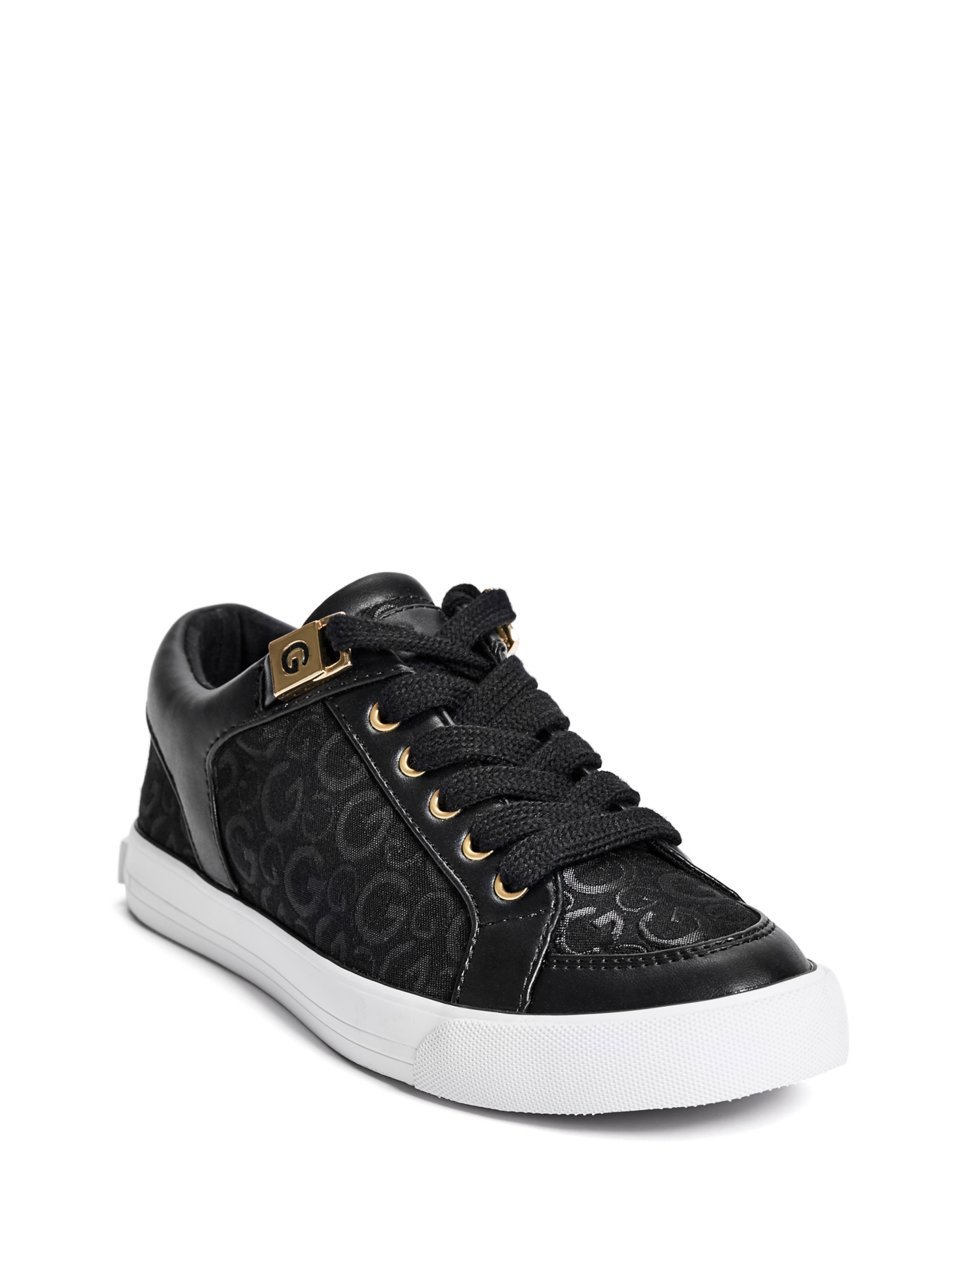 G by GUESS Oryder Logo-Embossed Suede Lace-up Sneakers B0749MRRJ1 8.5 B(M) US|Black Multi Fabric